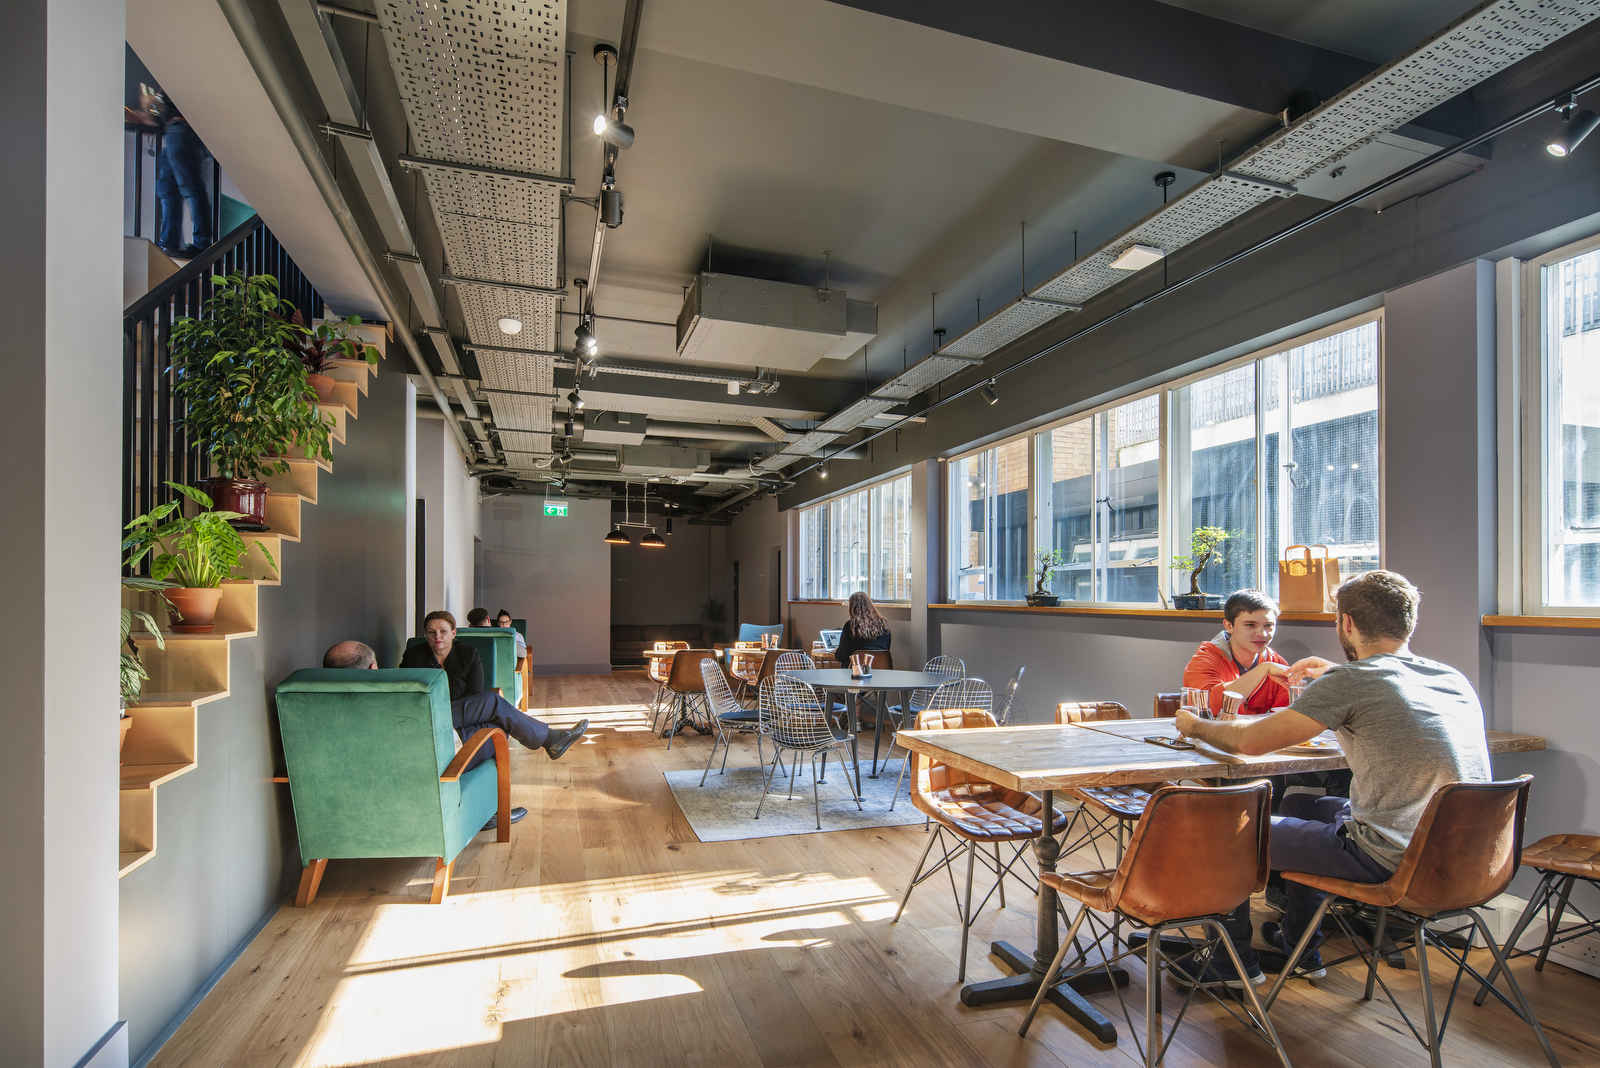 Best places for tech companies in East London